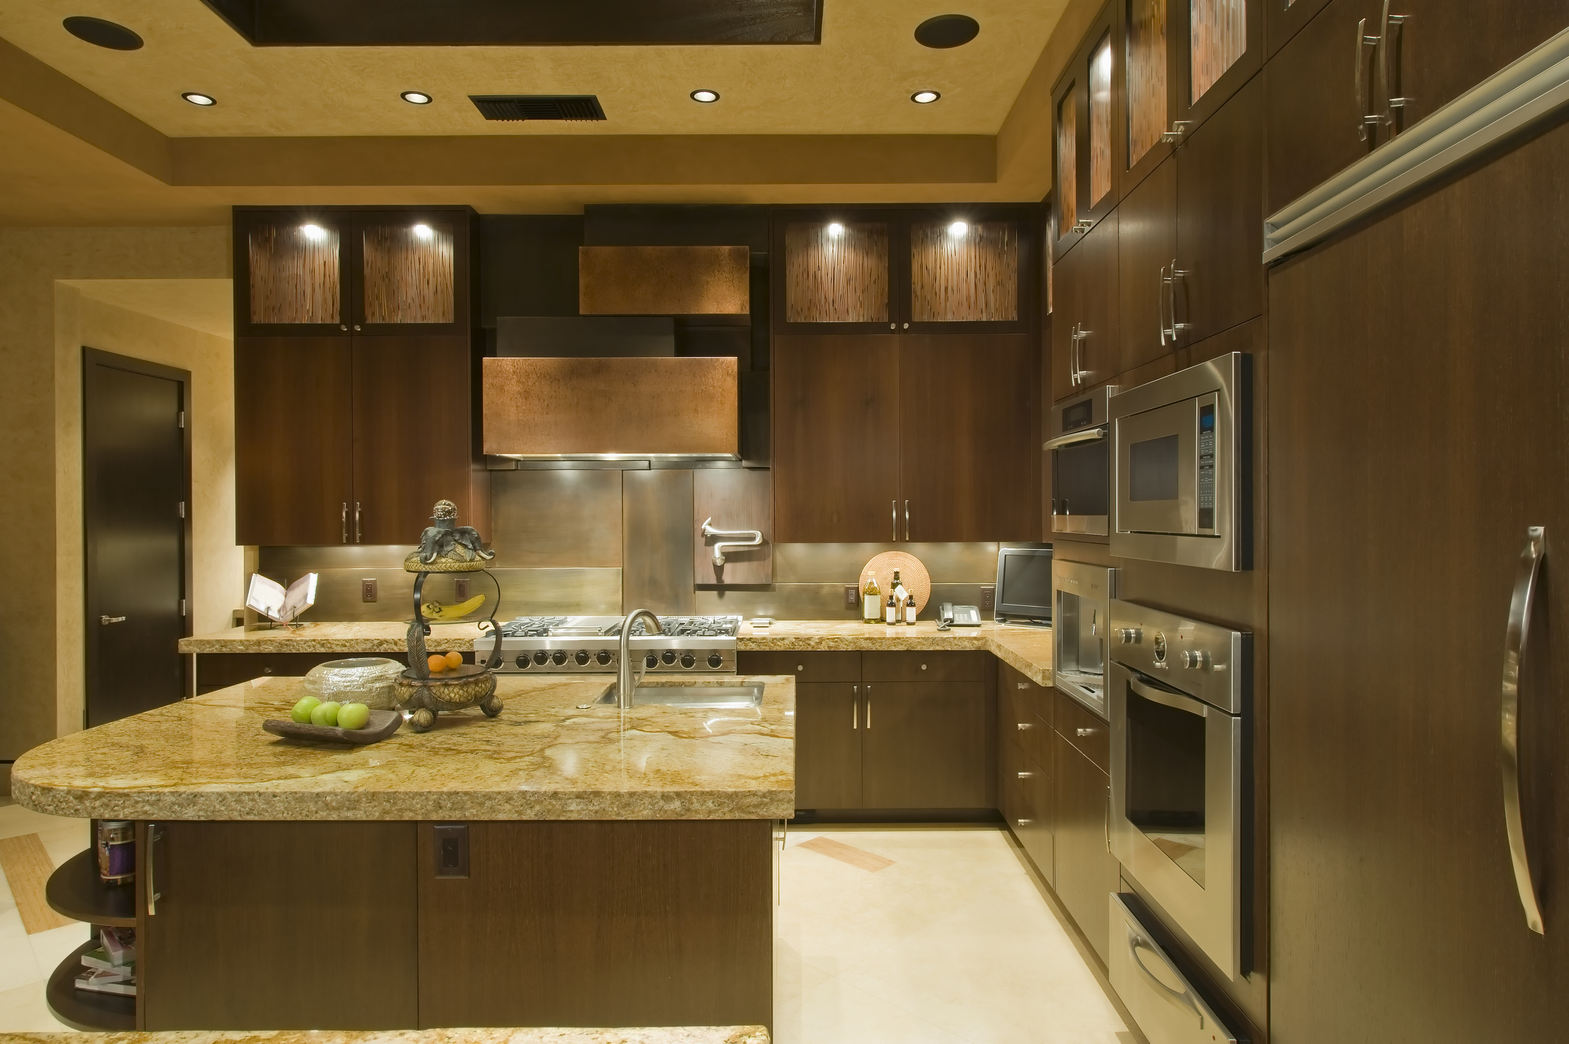 Dc kitchen remodeling trends for 2015 2016 Kitchen design remodel dc